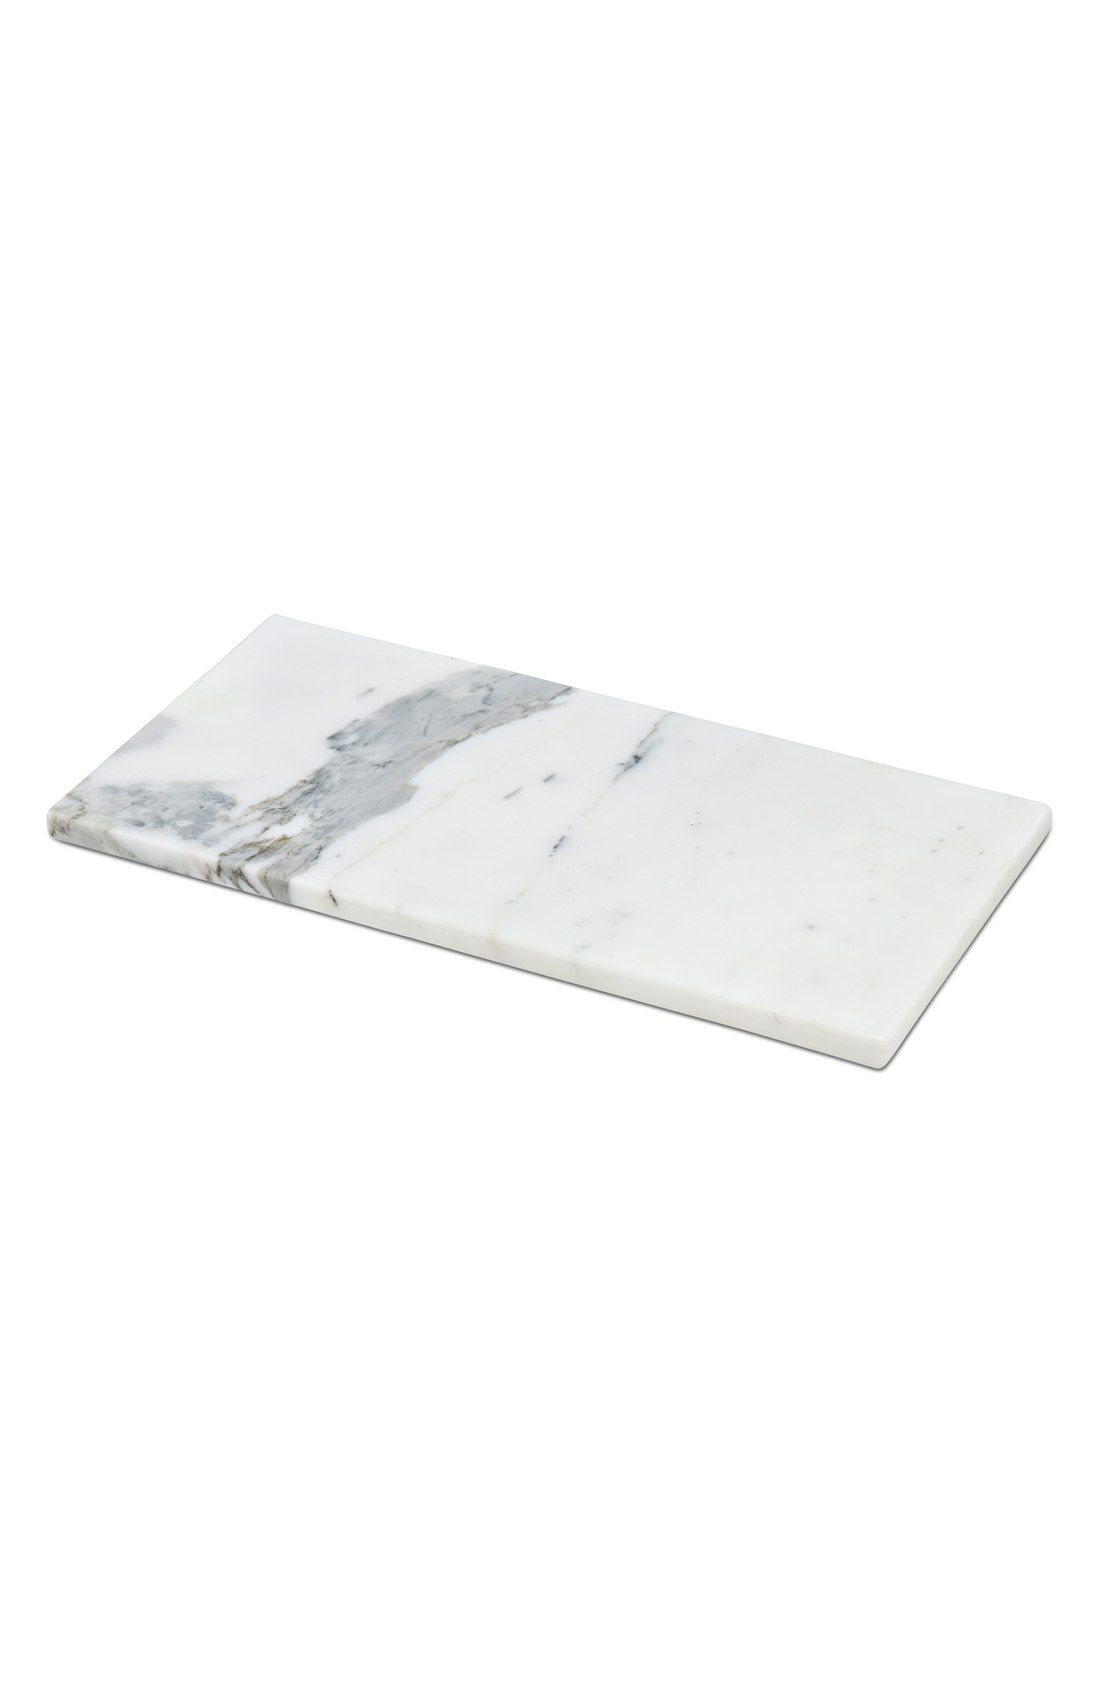 Small Marble Cutting Board Hay Chop Chop Extra Small Marble Chopping Board Gorgeous